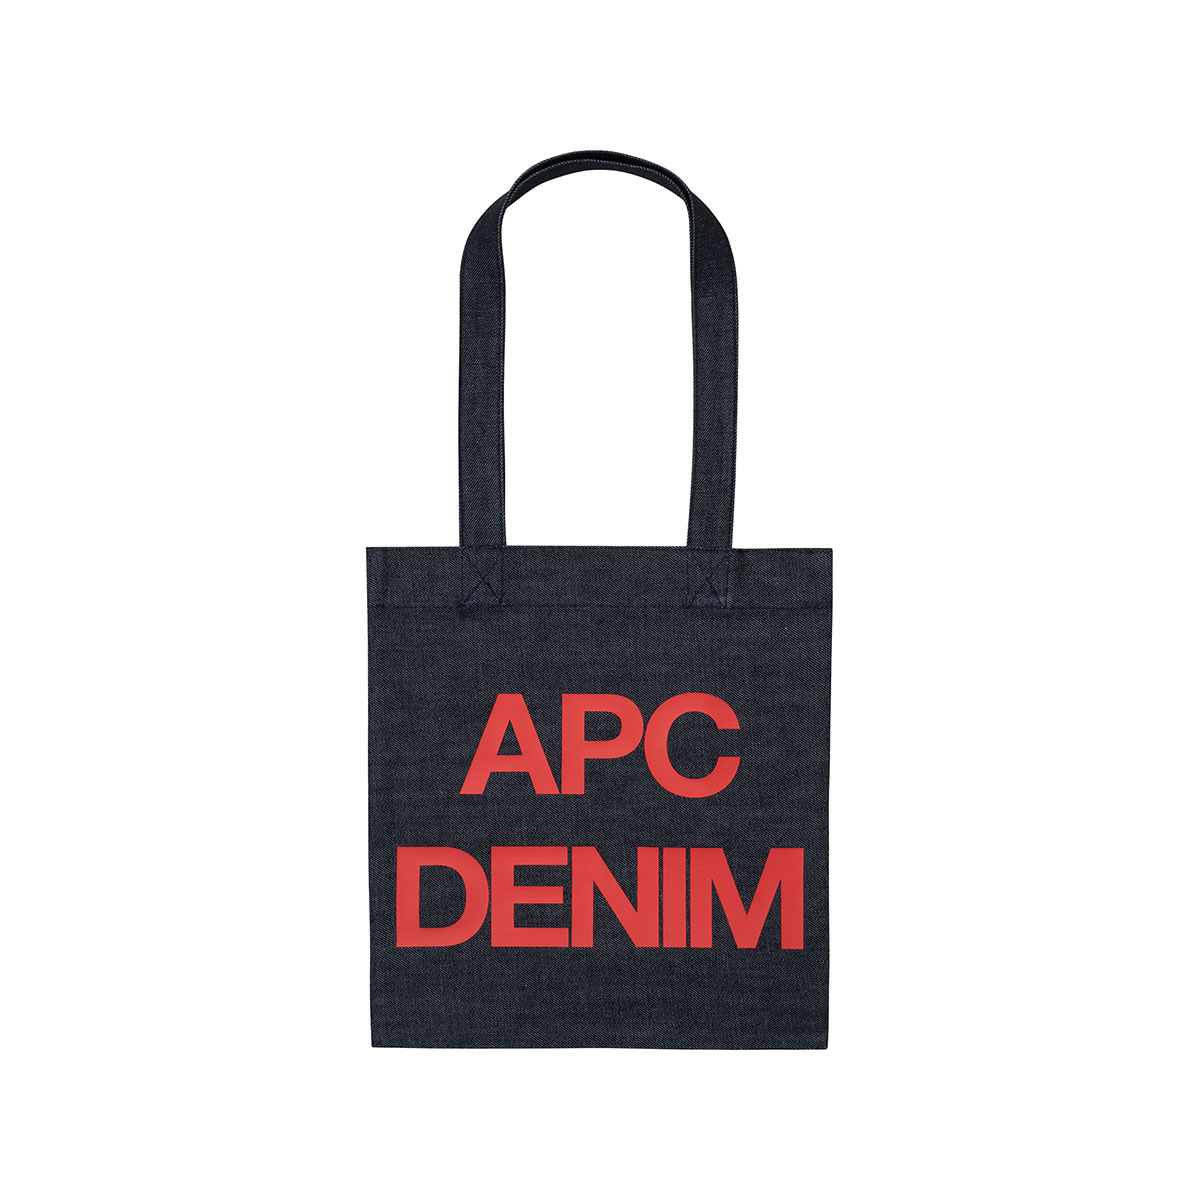 A.P.C. / TOTE BAG APC DENIM -RED